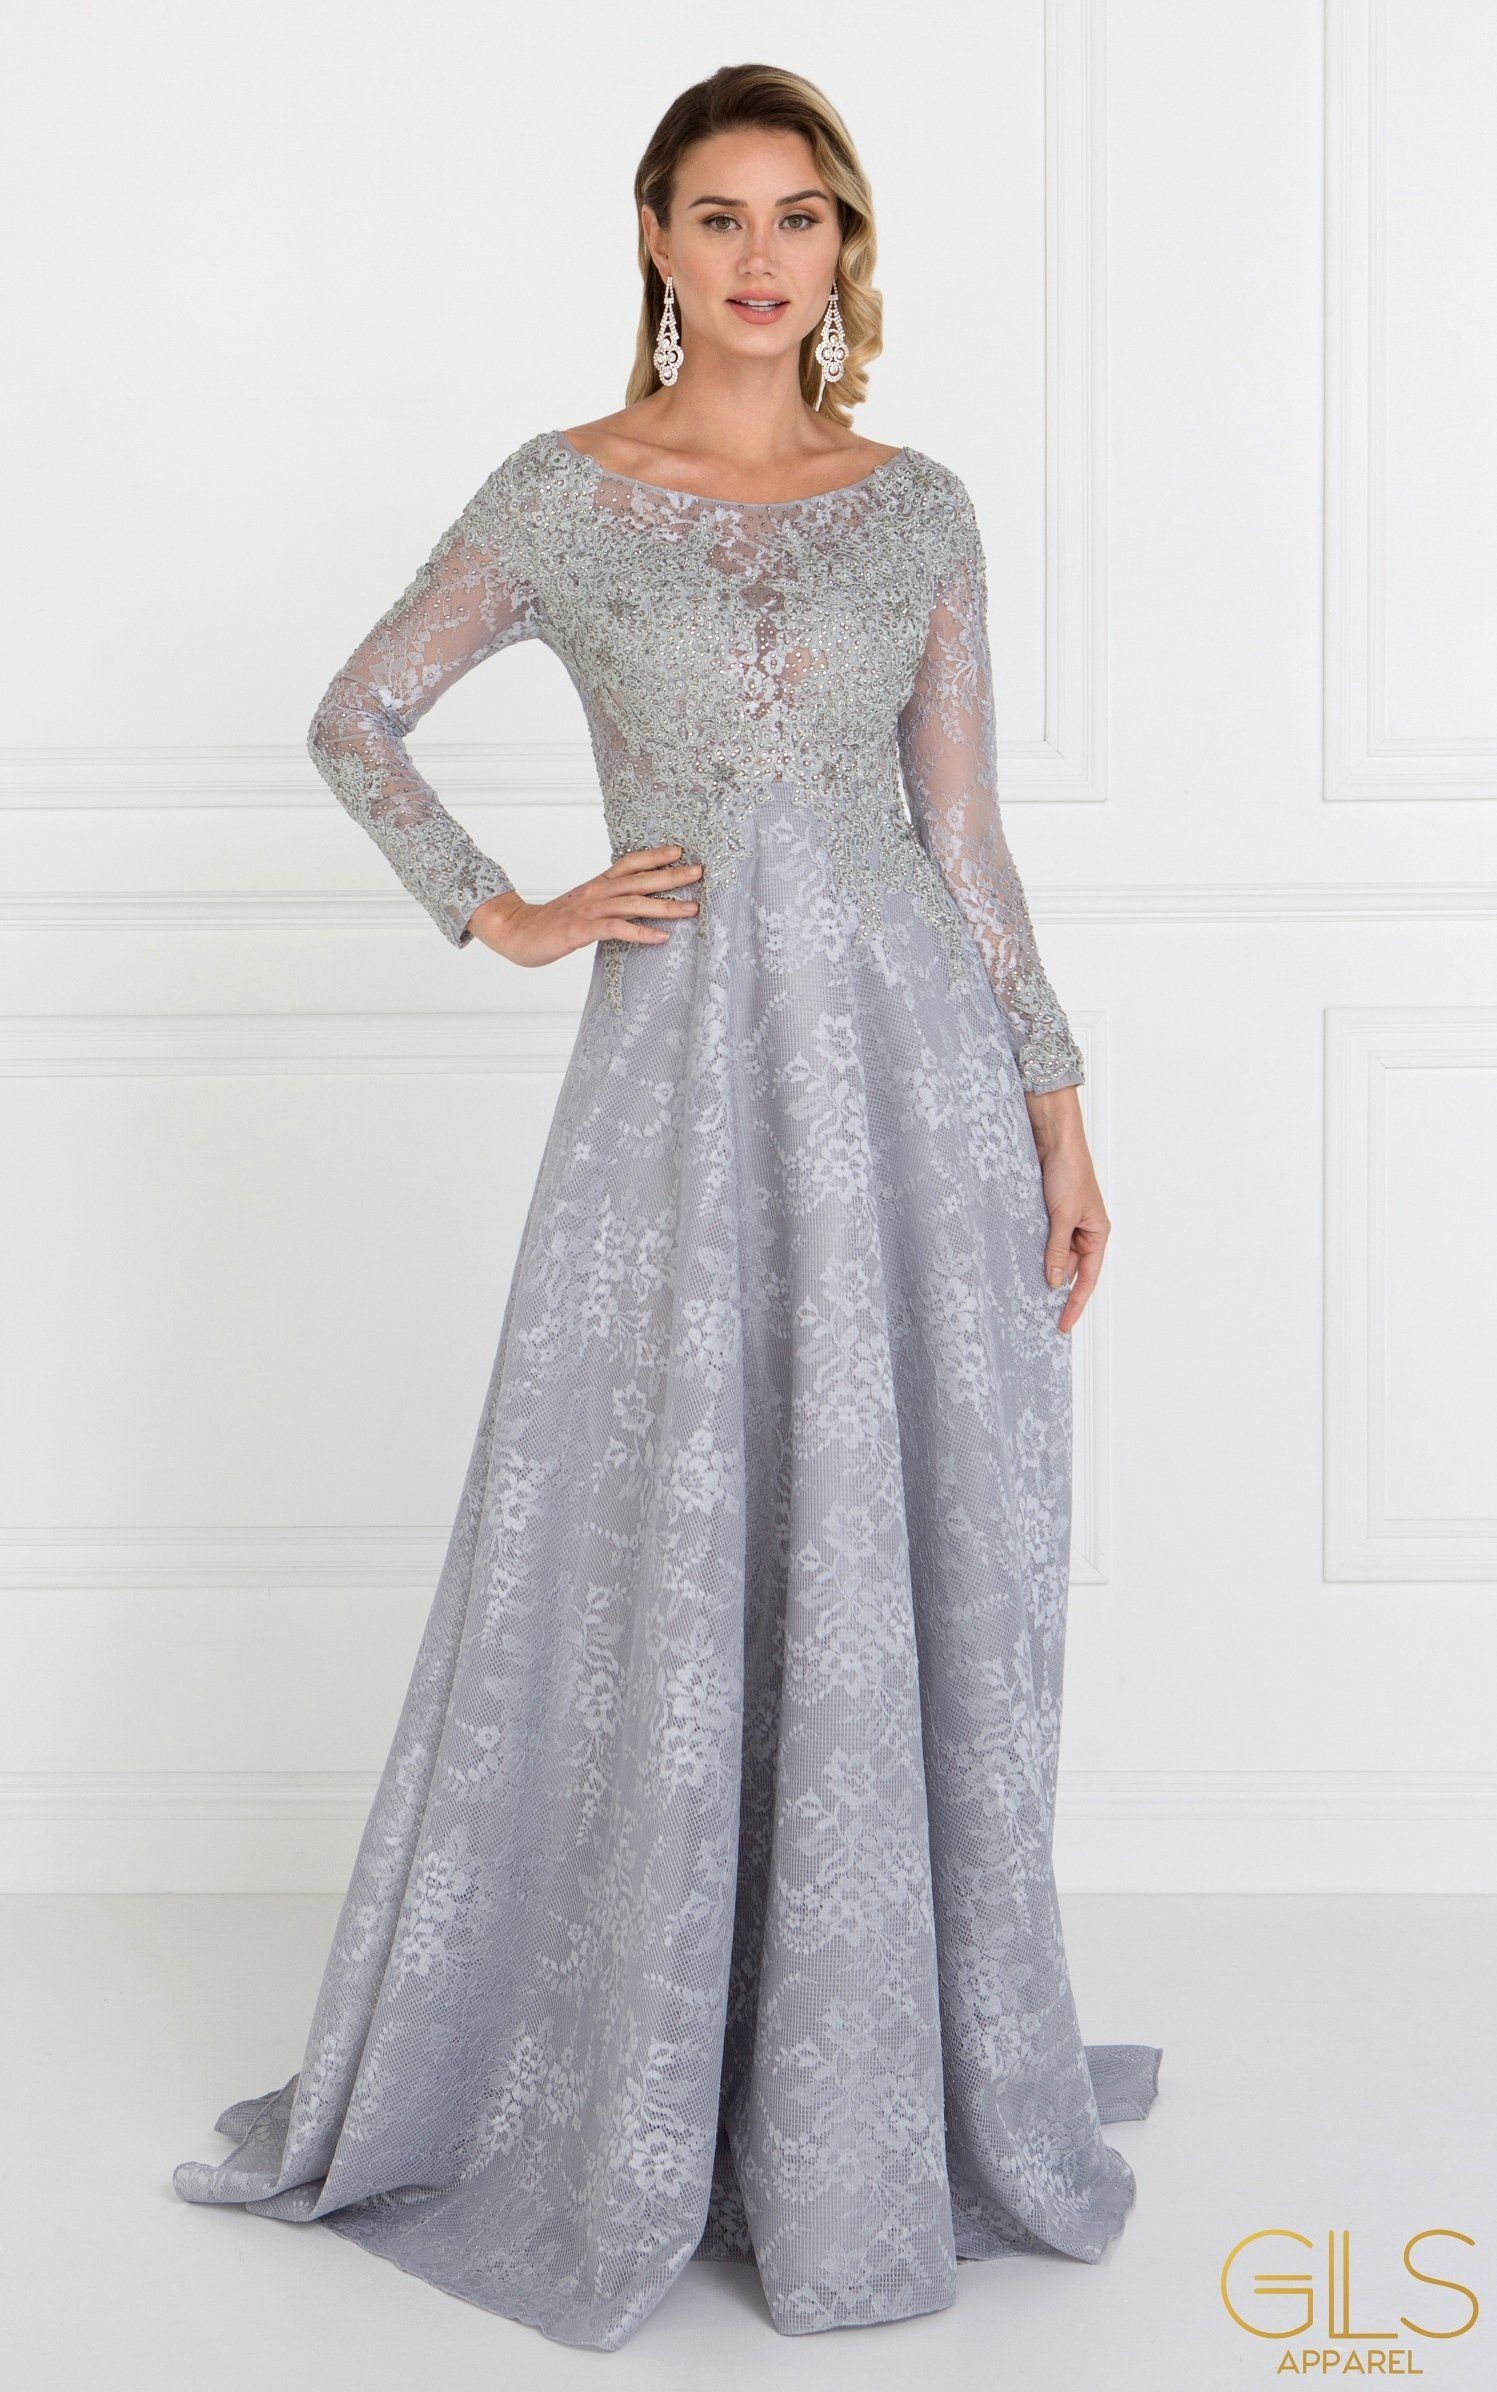 Long Silver Lace Dress With Lace Sleeves By Elizabeth K Gl1537 Long Sleeve Lace Evening Dress Lace Evening Dresses Dresses